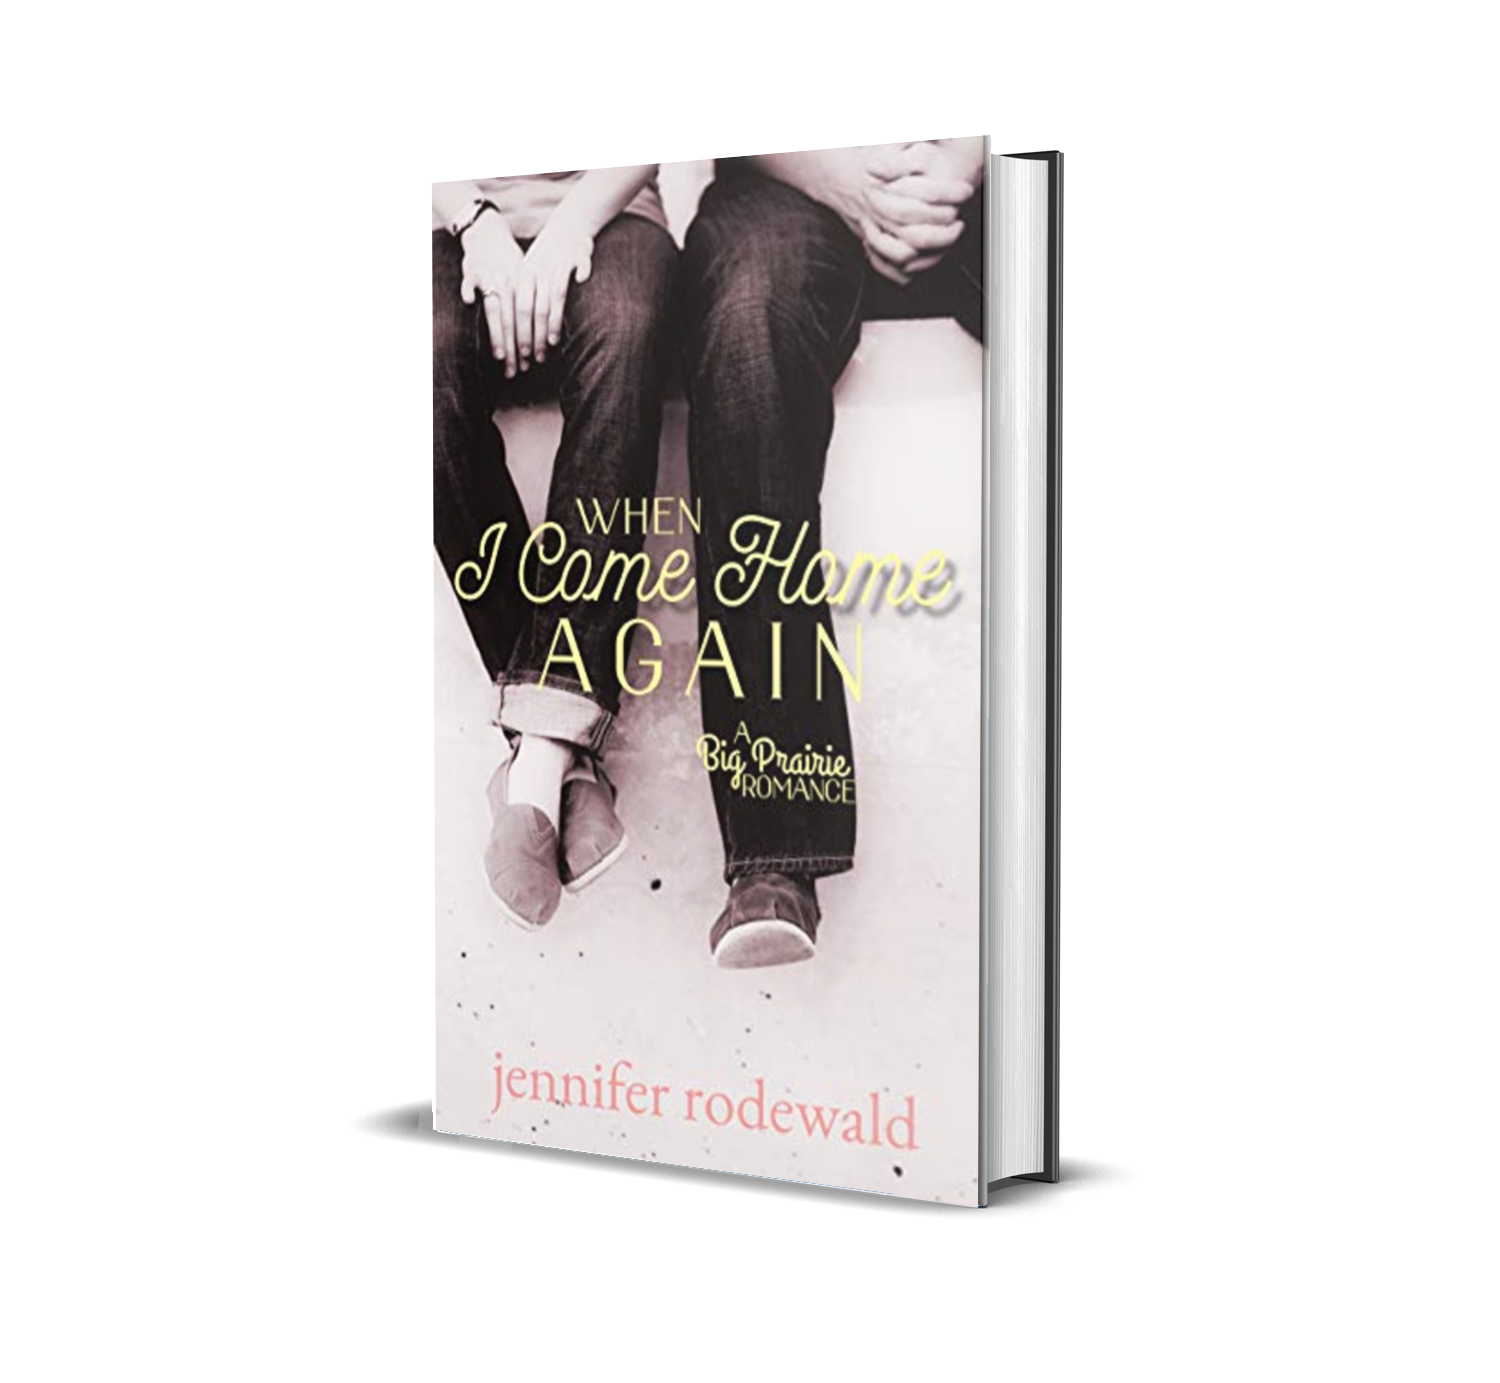 When I Come Home Again by Jennifer Rodewald